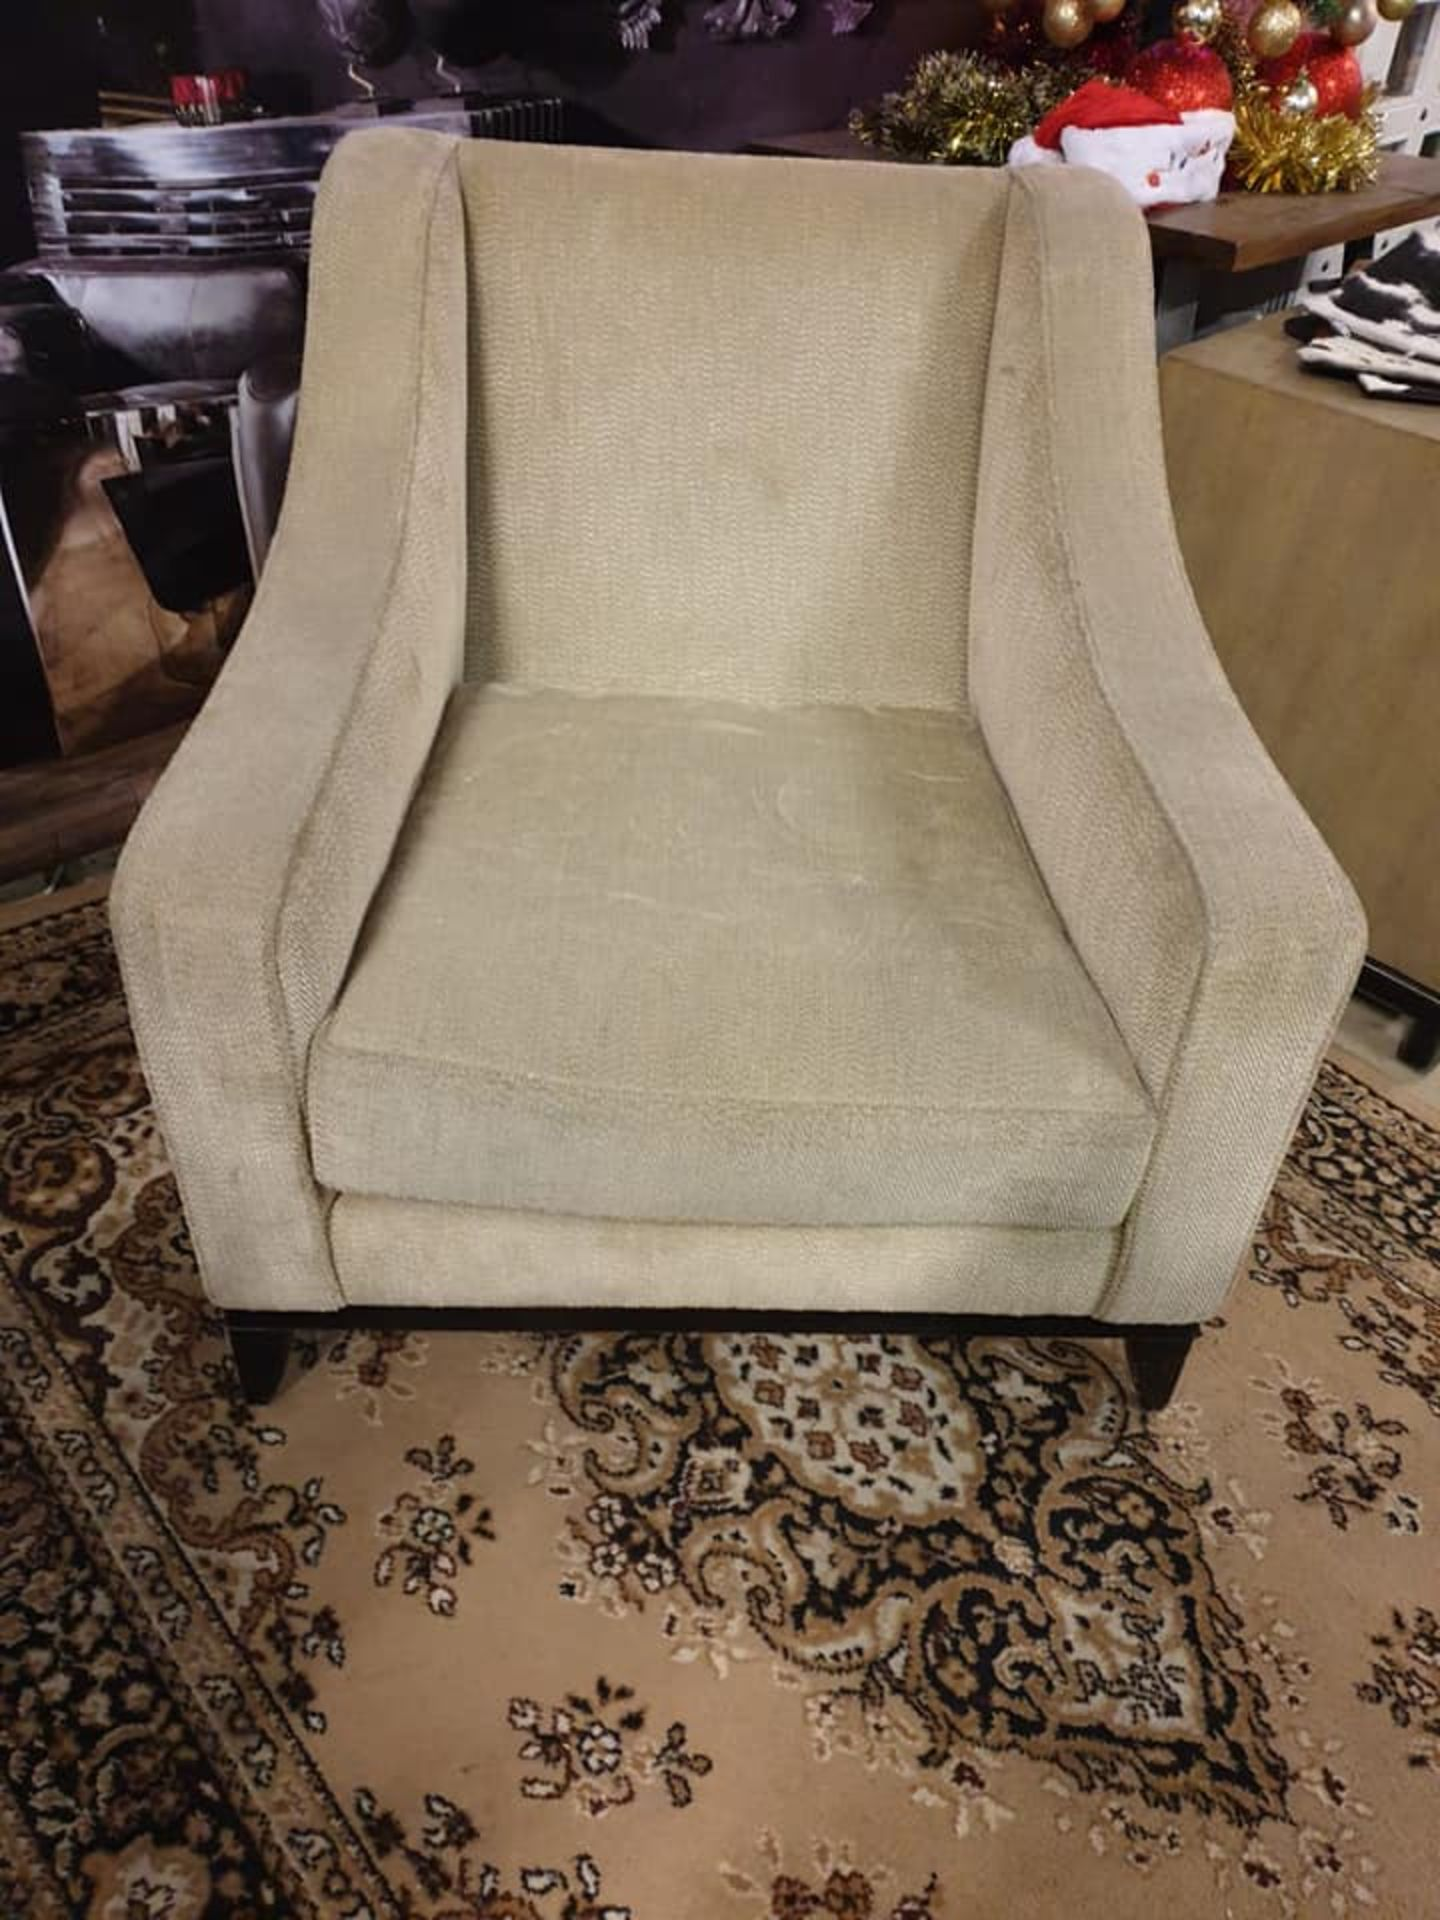 A Pair Of Luxury Upholstered Cream Large Armchairs 84 X 70 X 87cm - Image 2 of 2